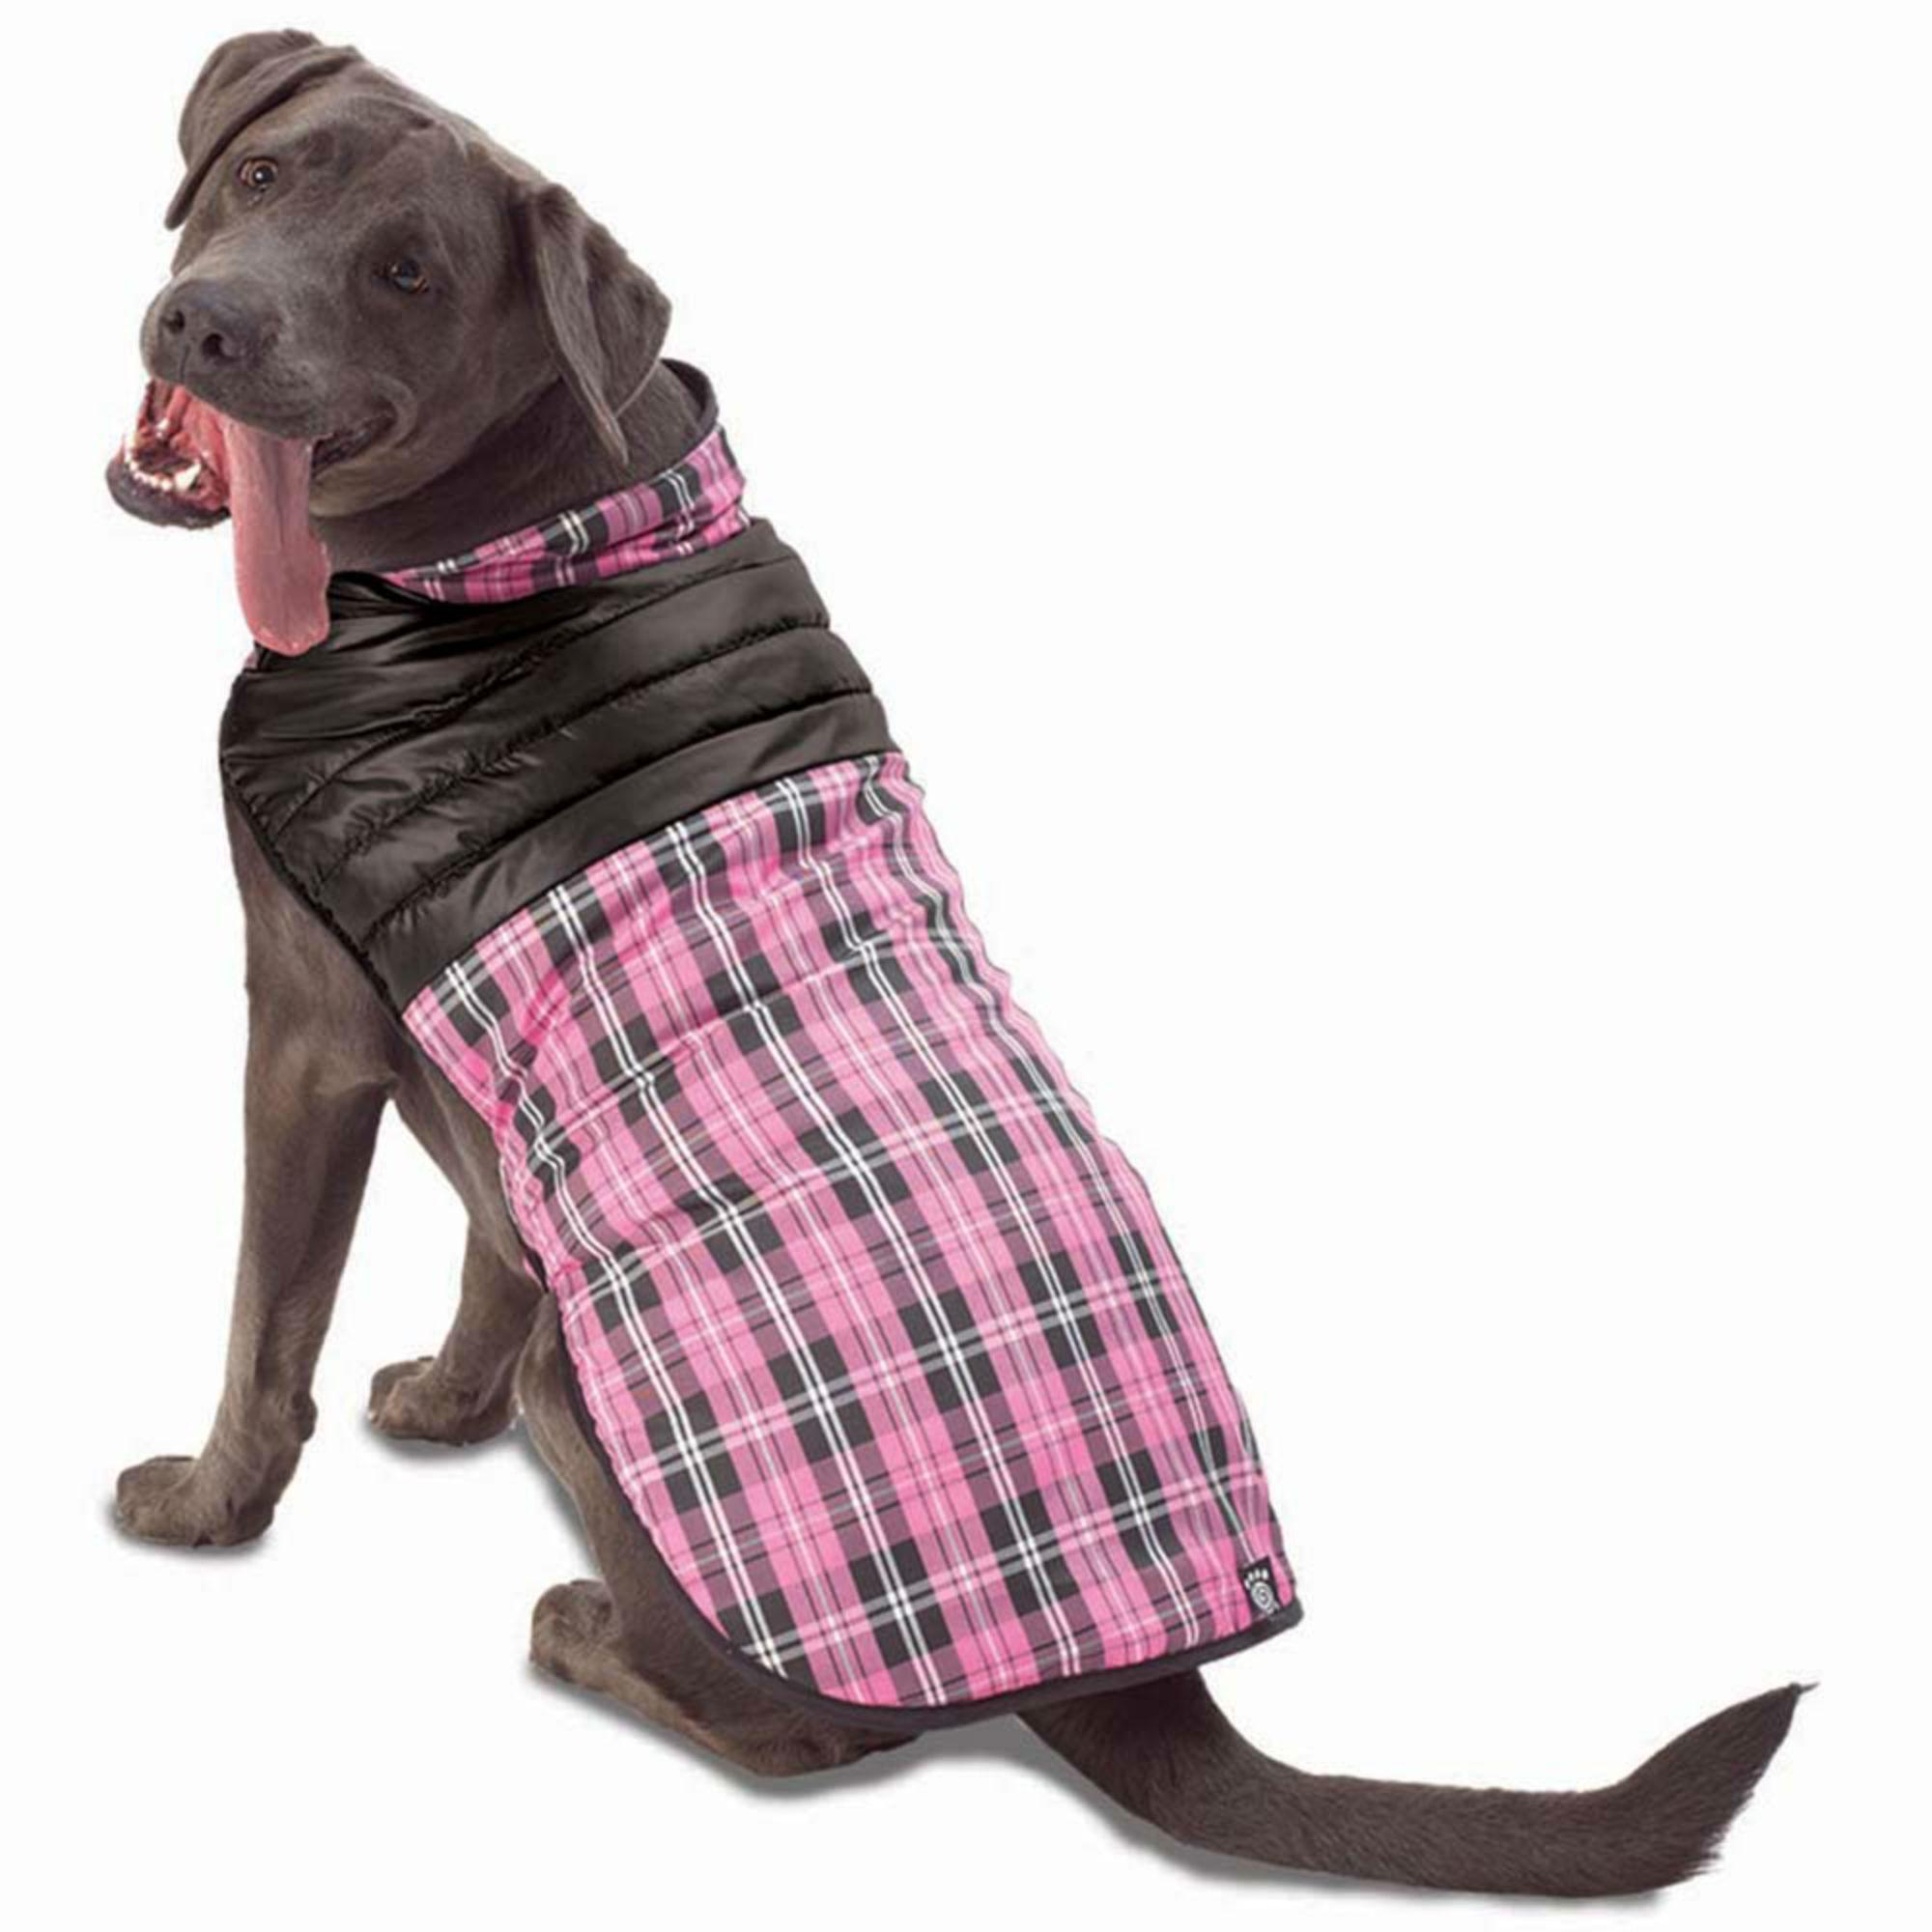 Vail Dog Vest - Pink Plaid